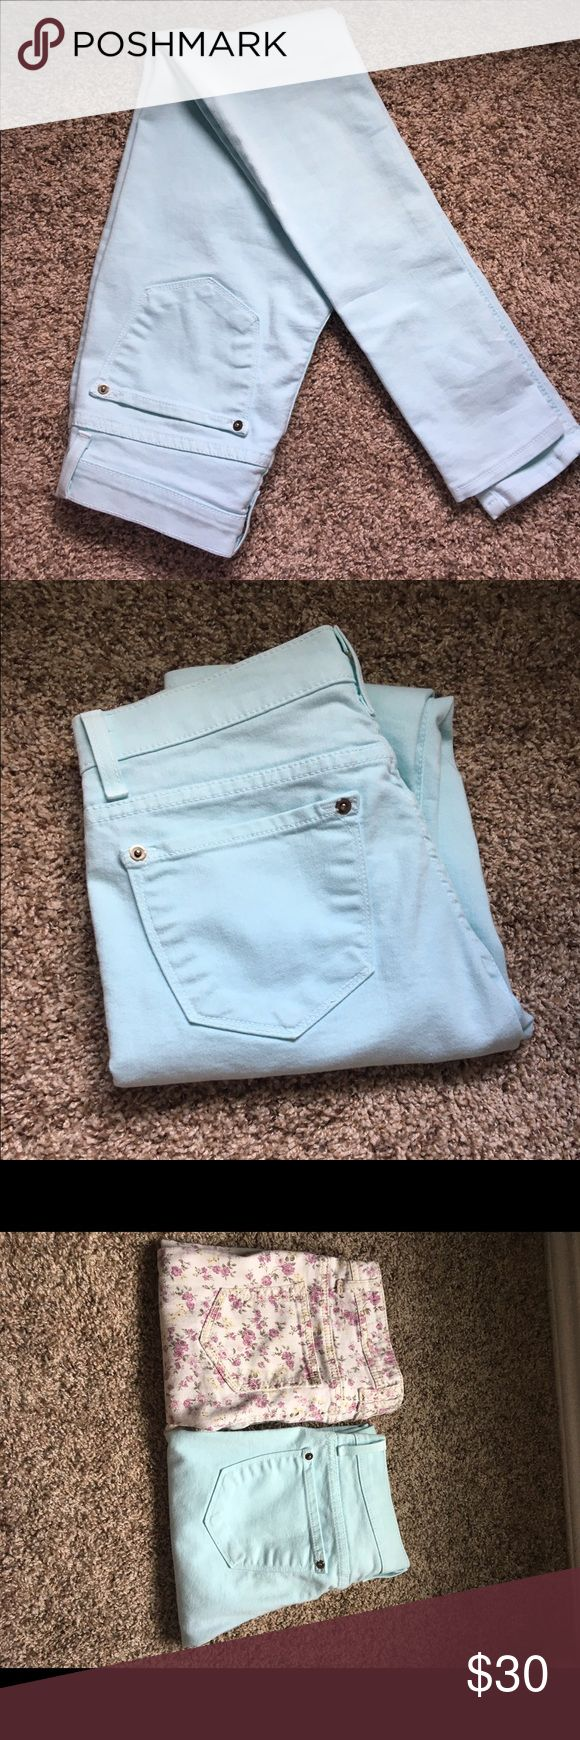 Light Blue Skinny Jeans - Size 26 Super skinny jeans, light blue, size 26. Barely worn! Made of soft denim with all white stitching. Make an offer! Jeans Skinny